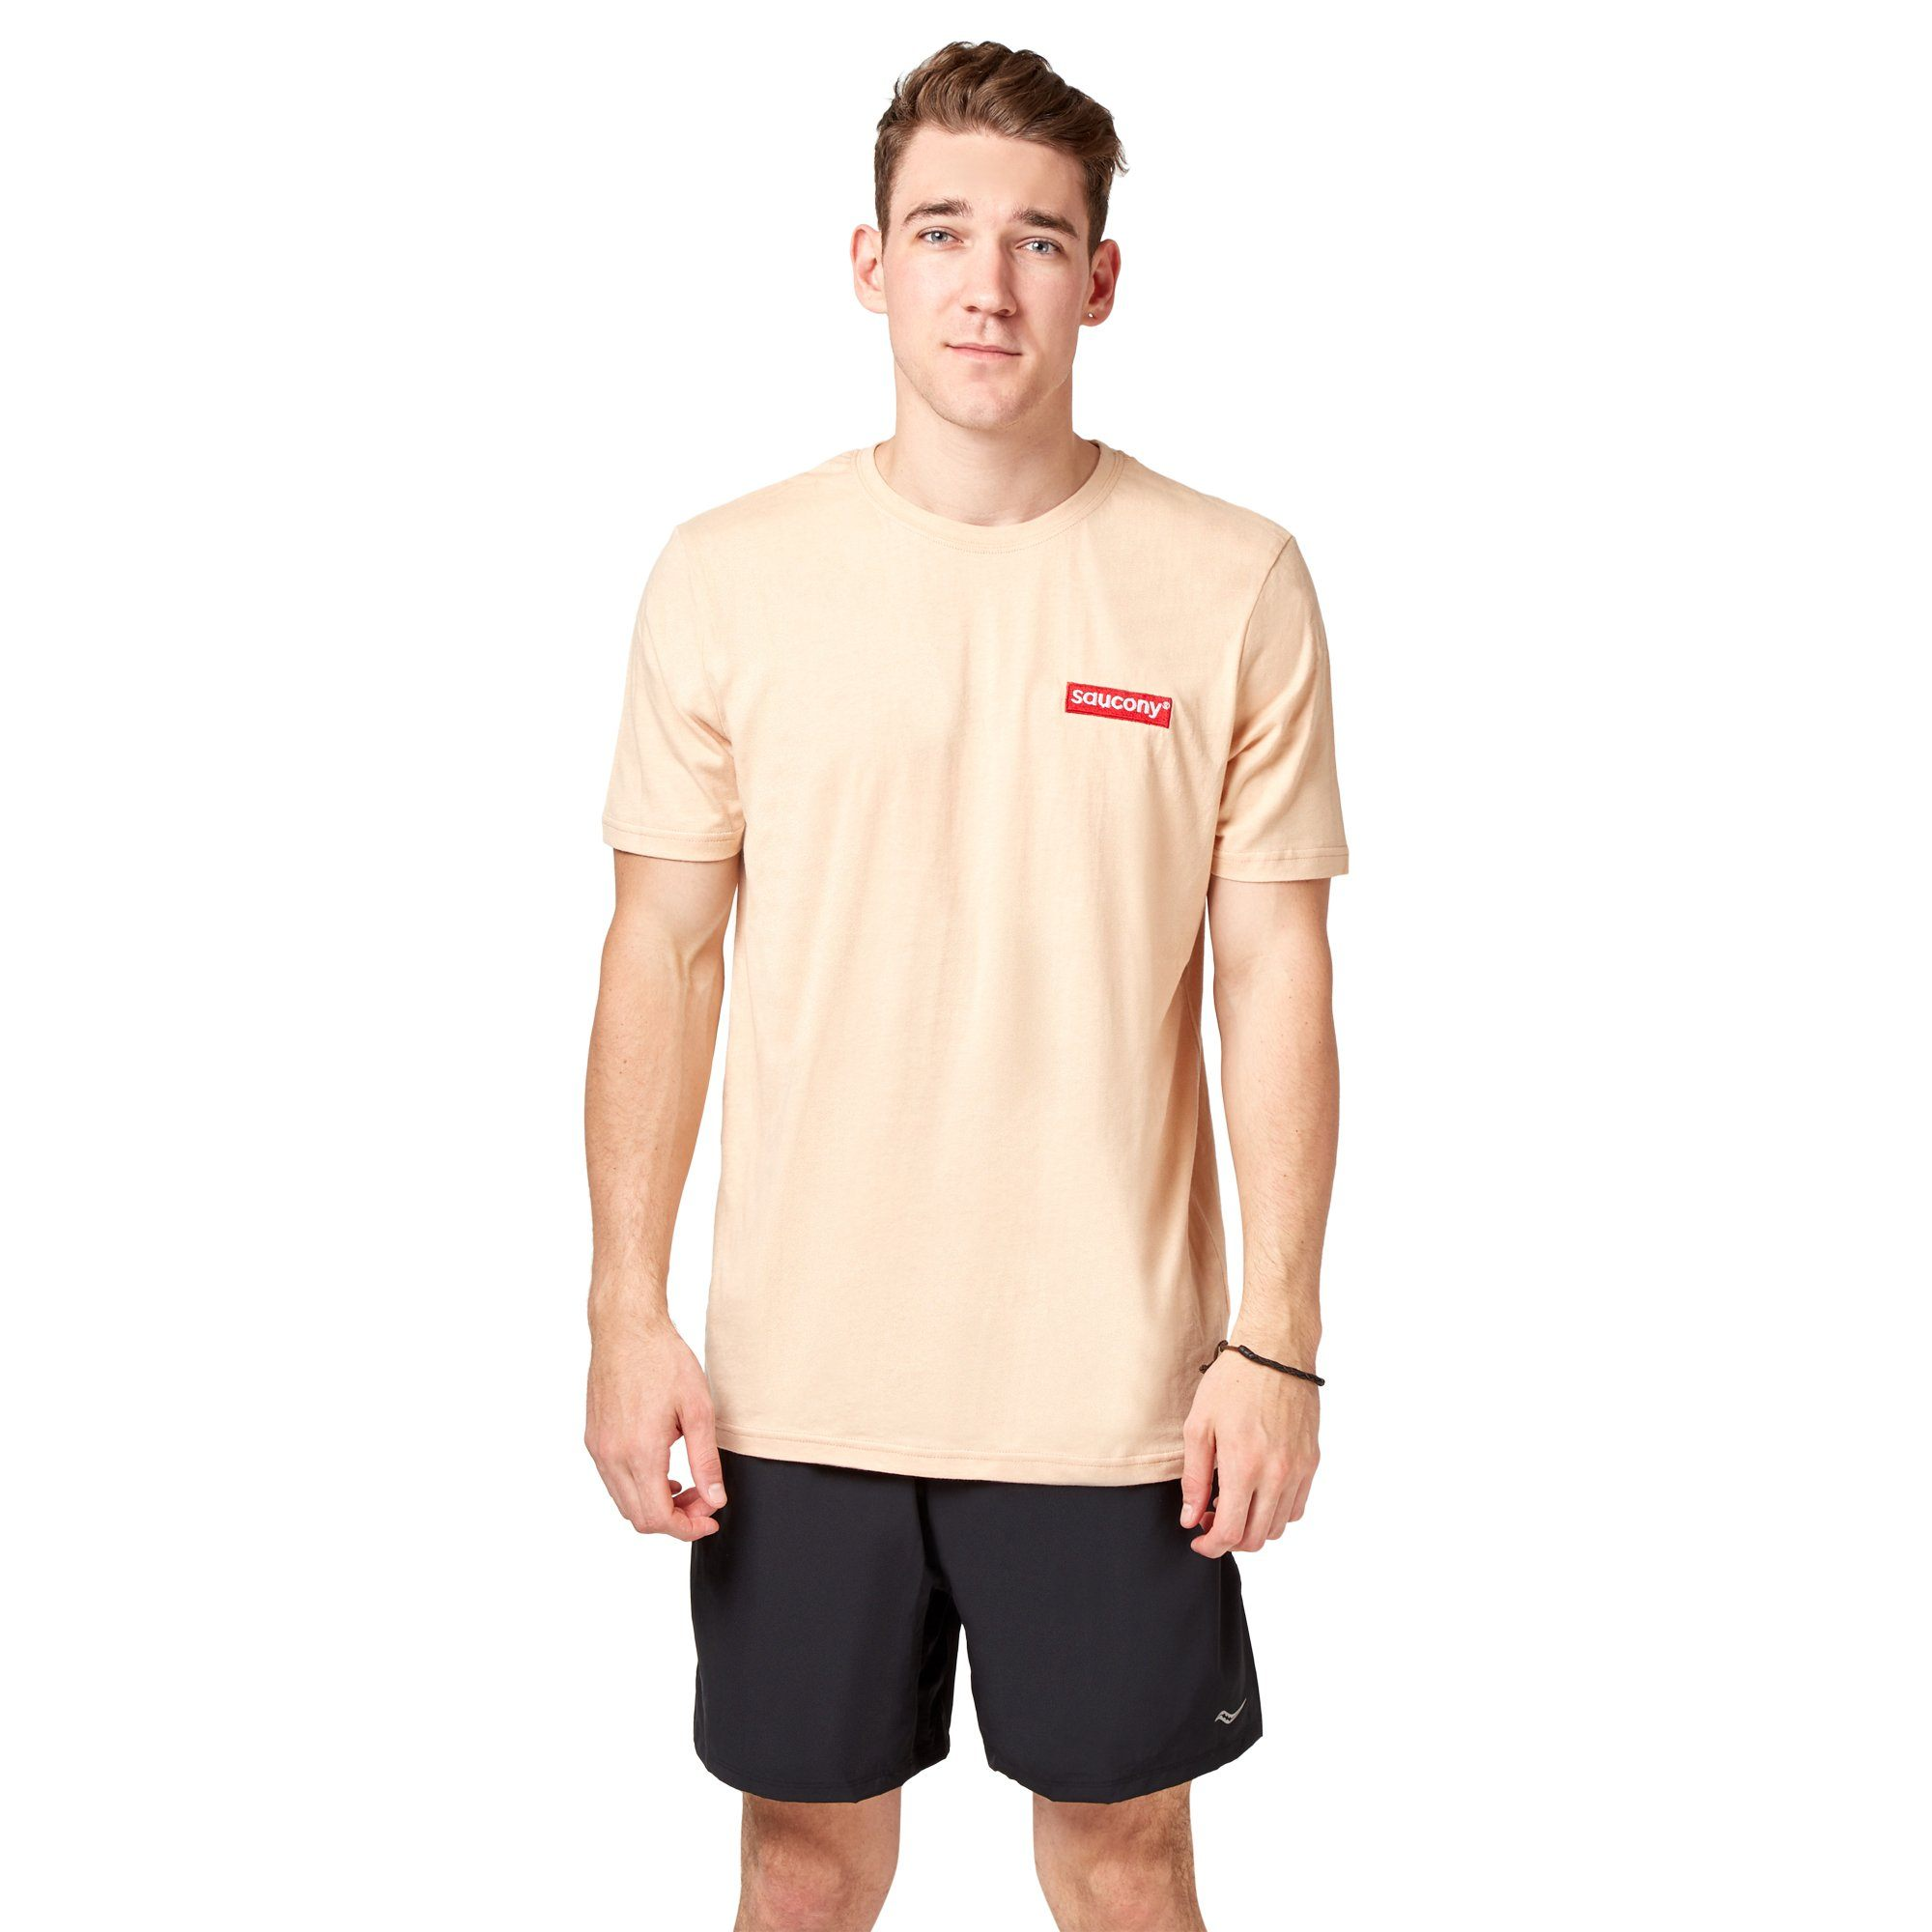 Saucony Block Embroidered Tee - Hazelnut Apparel Saucony